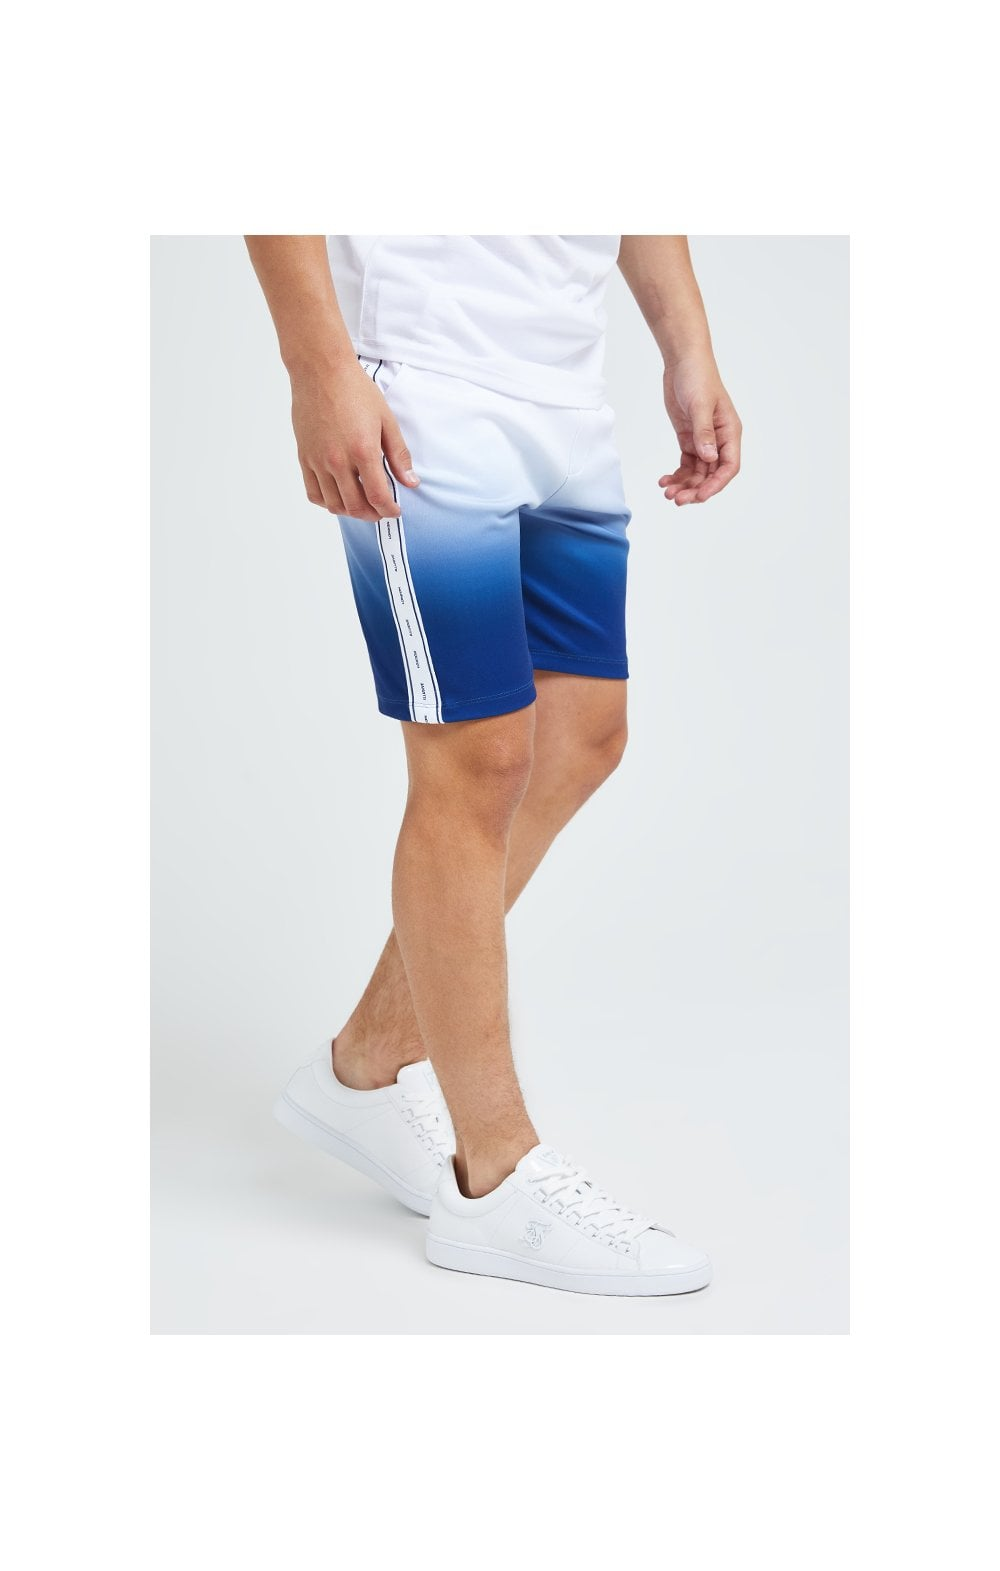 Illusive London Fade Poly Shorts - Indigo & White (3)